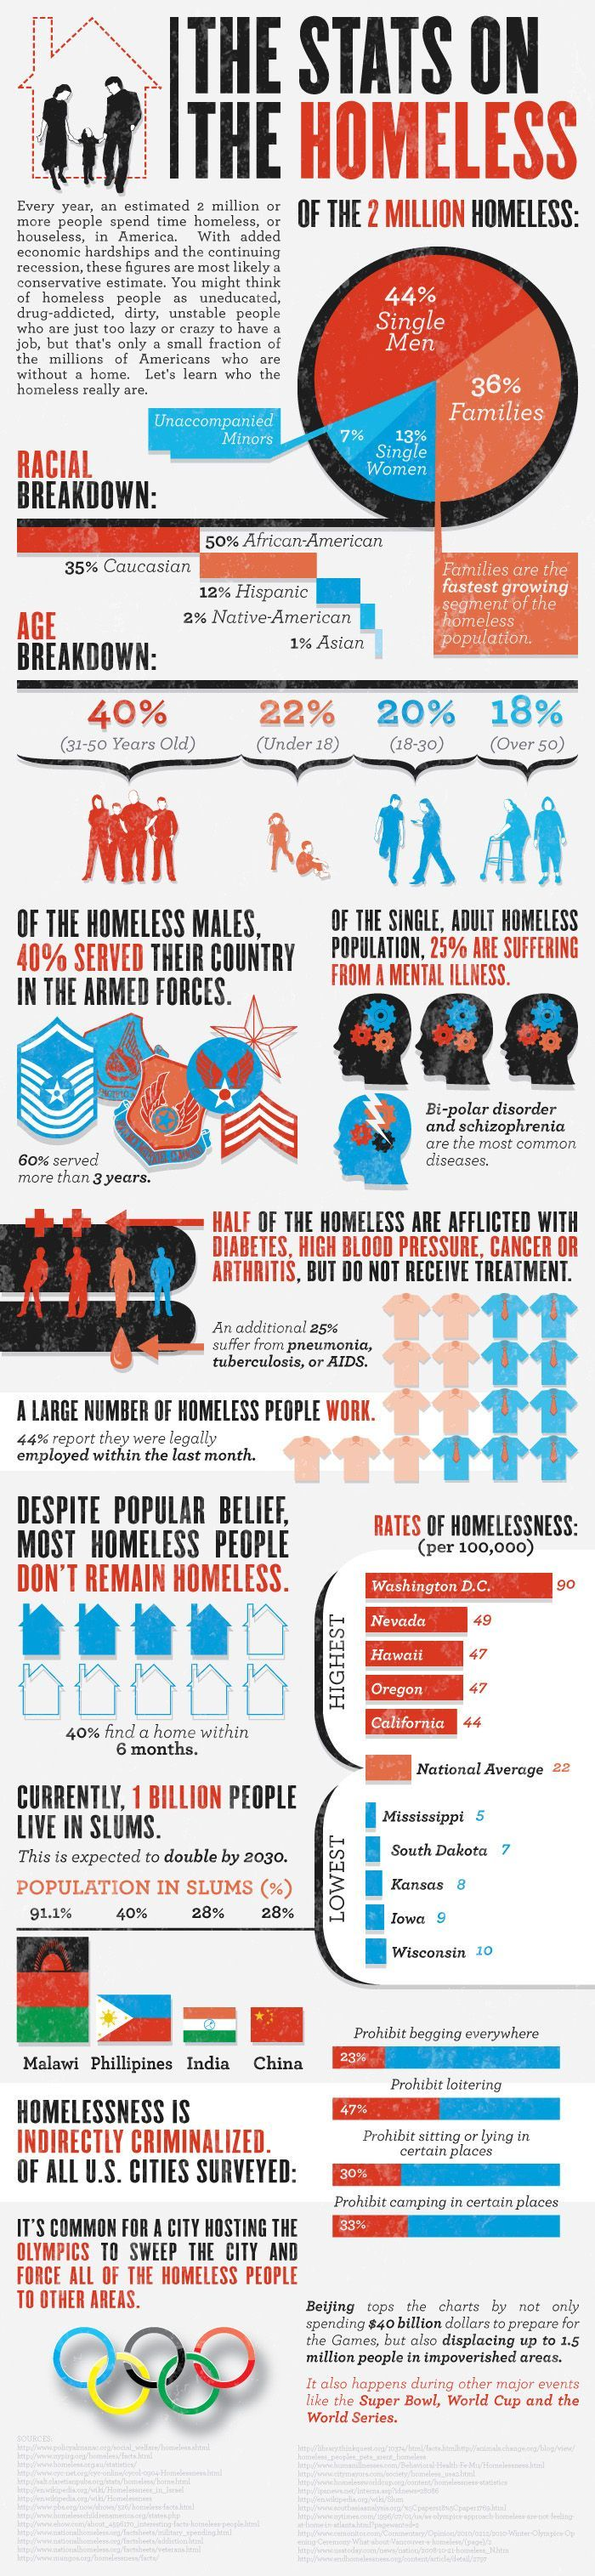 Statistics on homelessness in the US and abroad. When you see a need, PLEASE HELP.